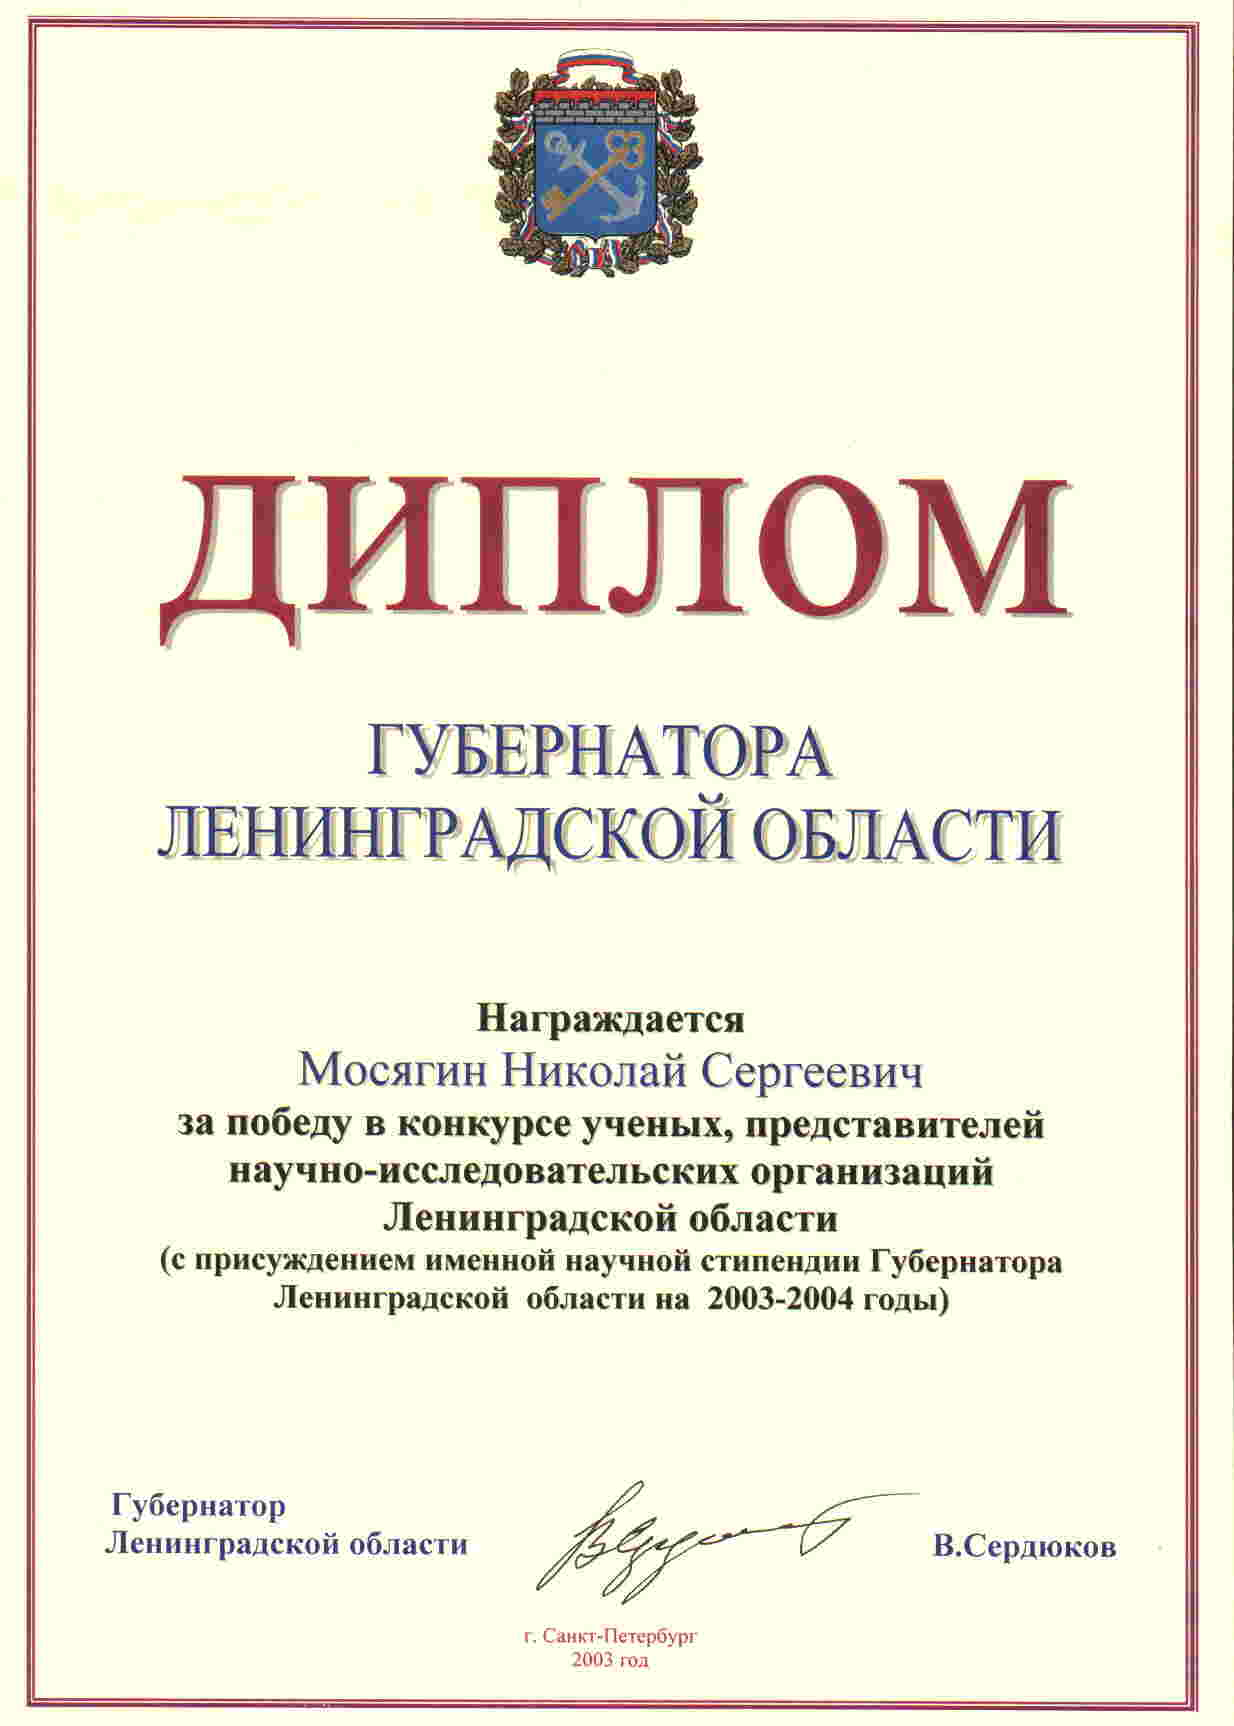 Diploma of Leningrad district Governor